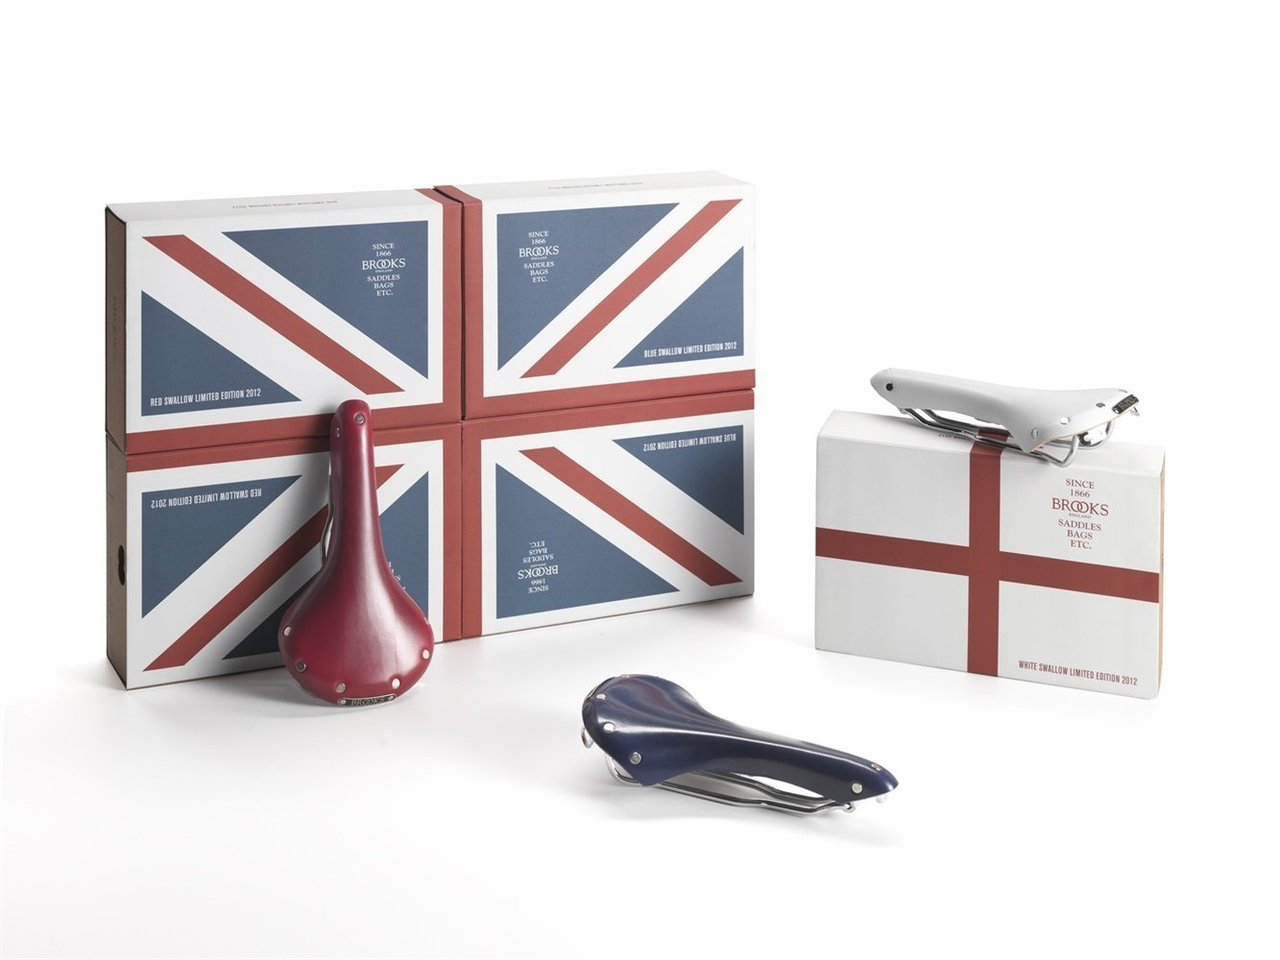 Brooks Union Jack Swallow Limited Edition 2012